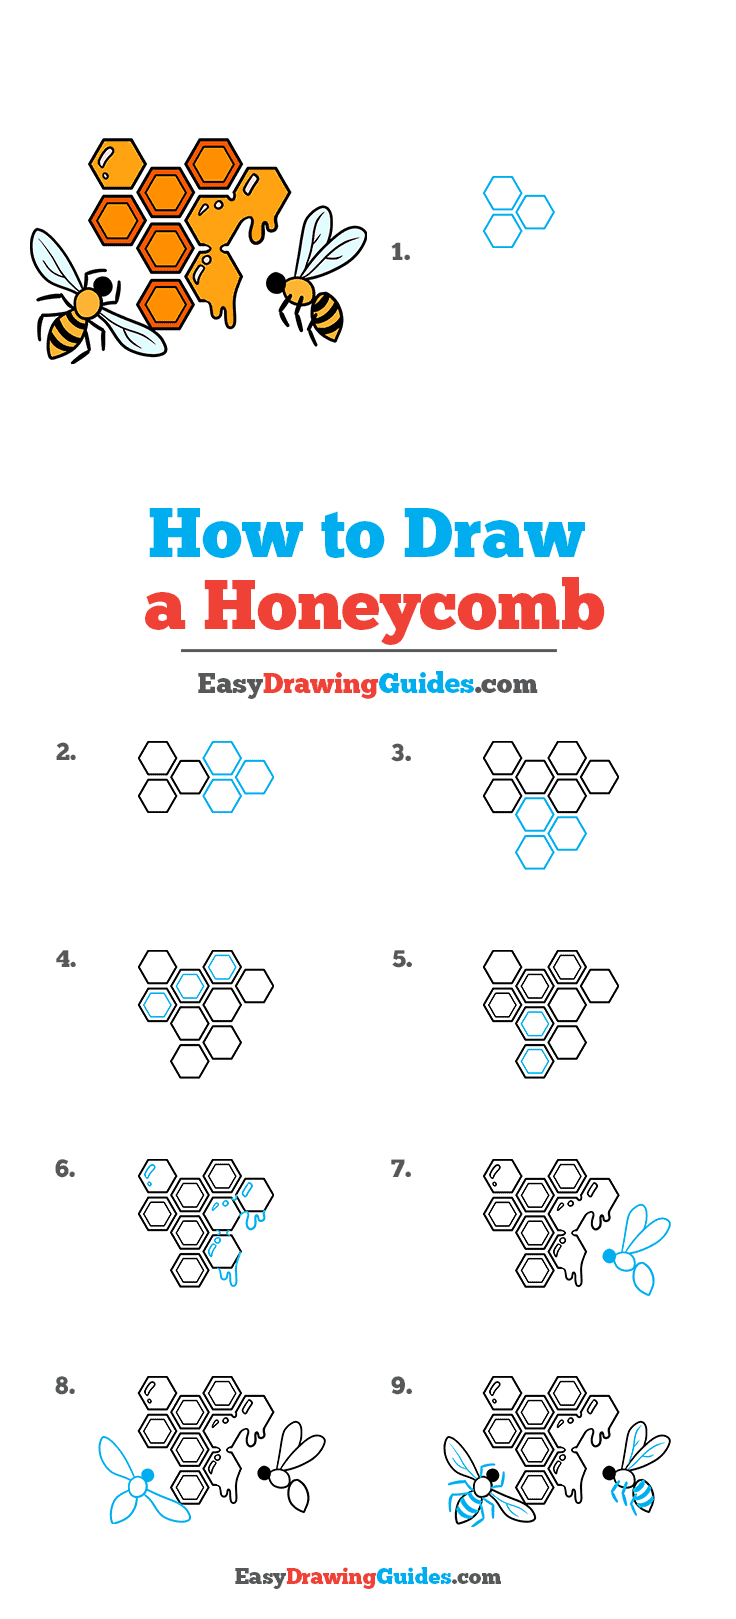 How to Draw a Honeycomb Step by Step Tutorial Image